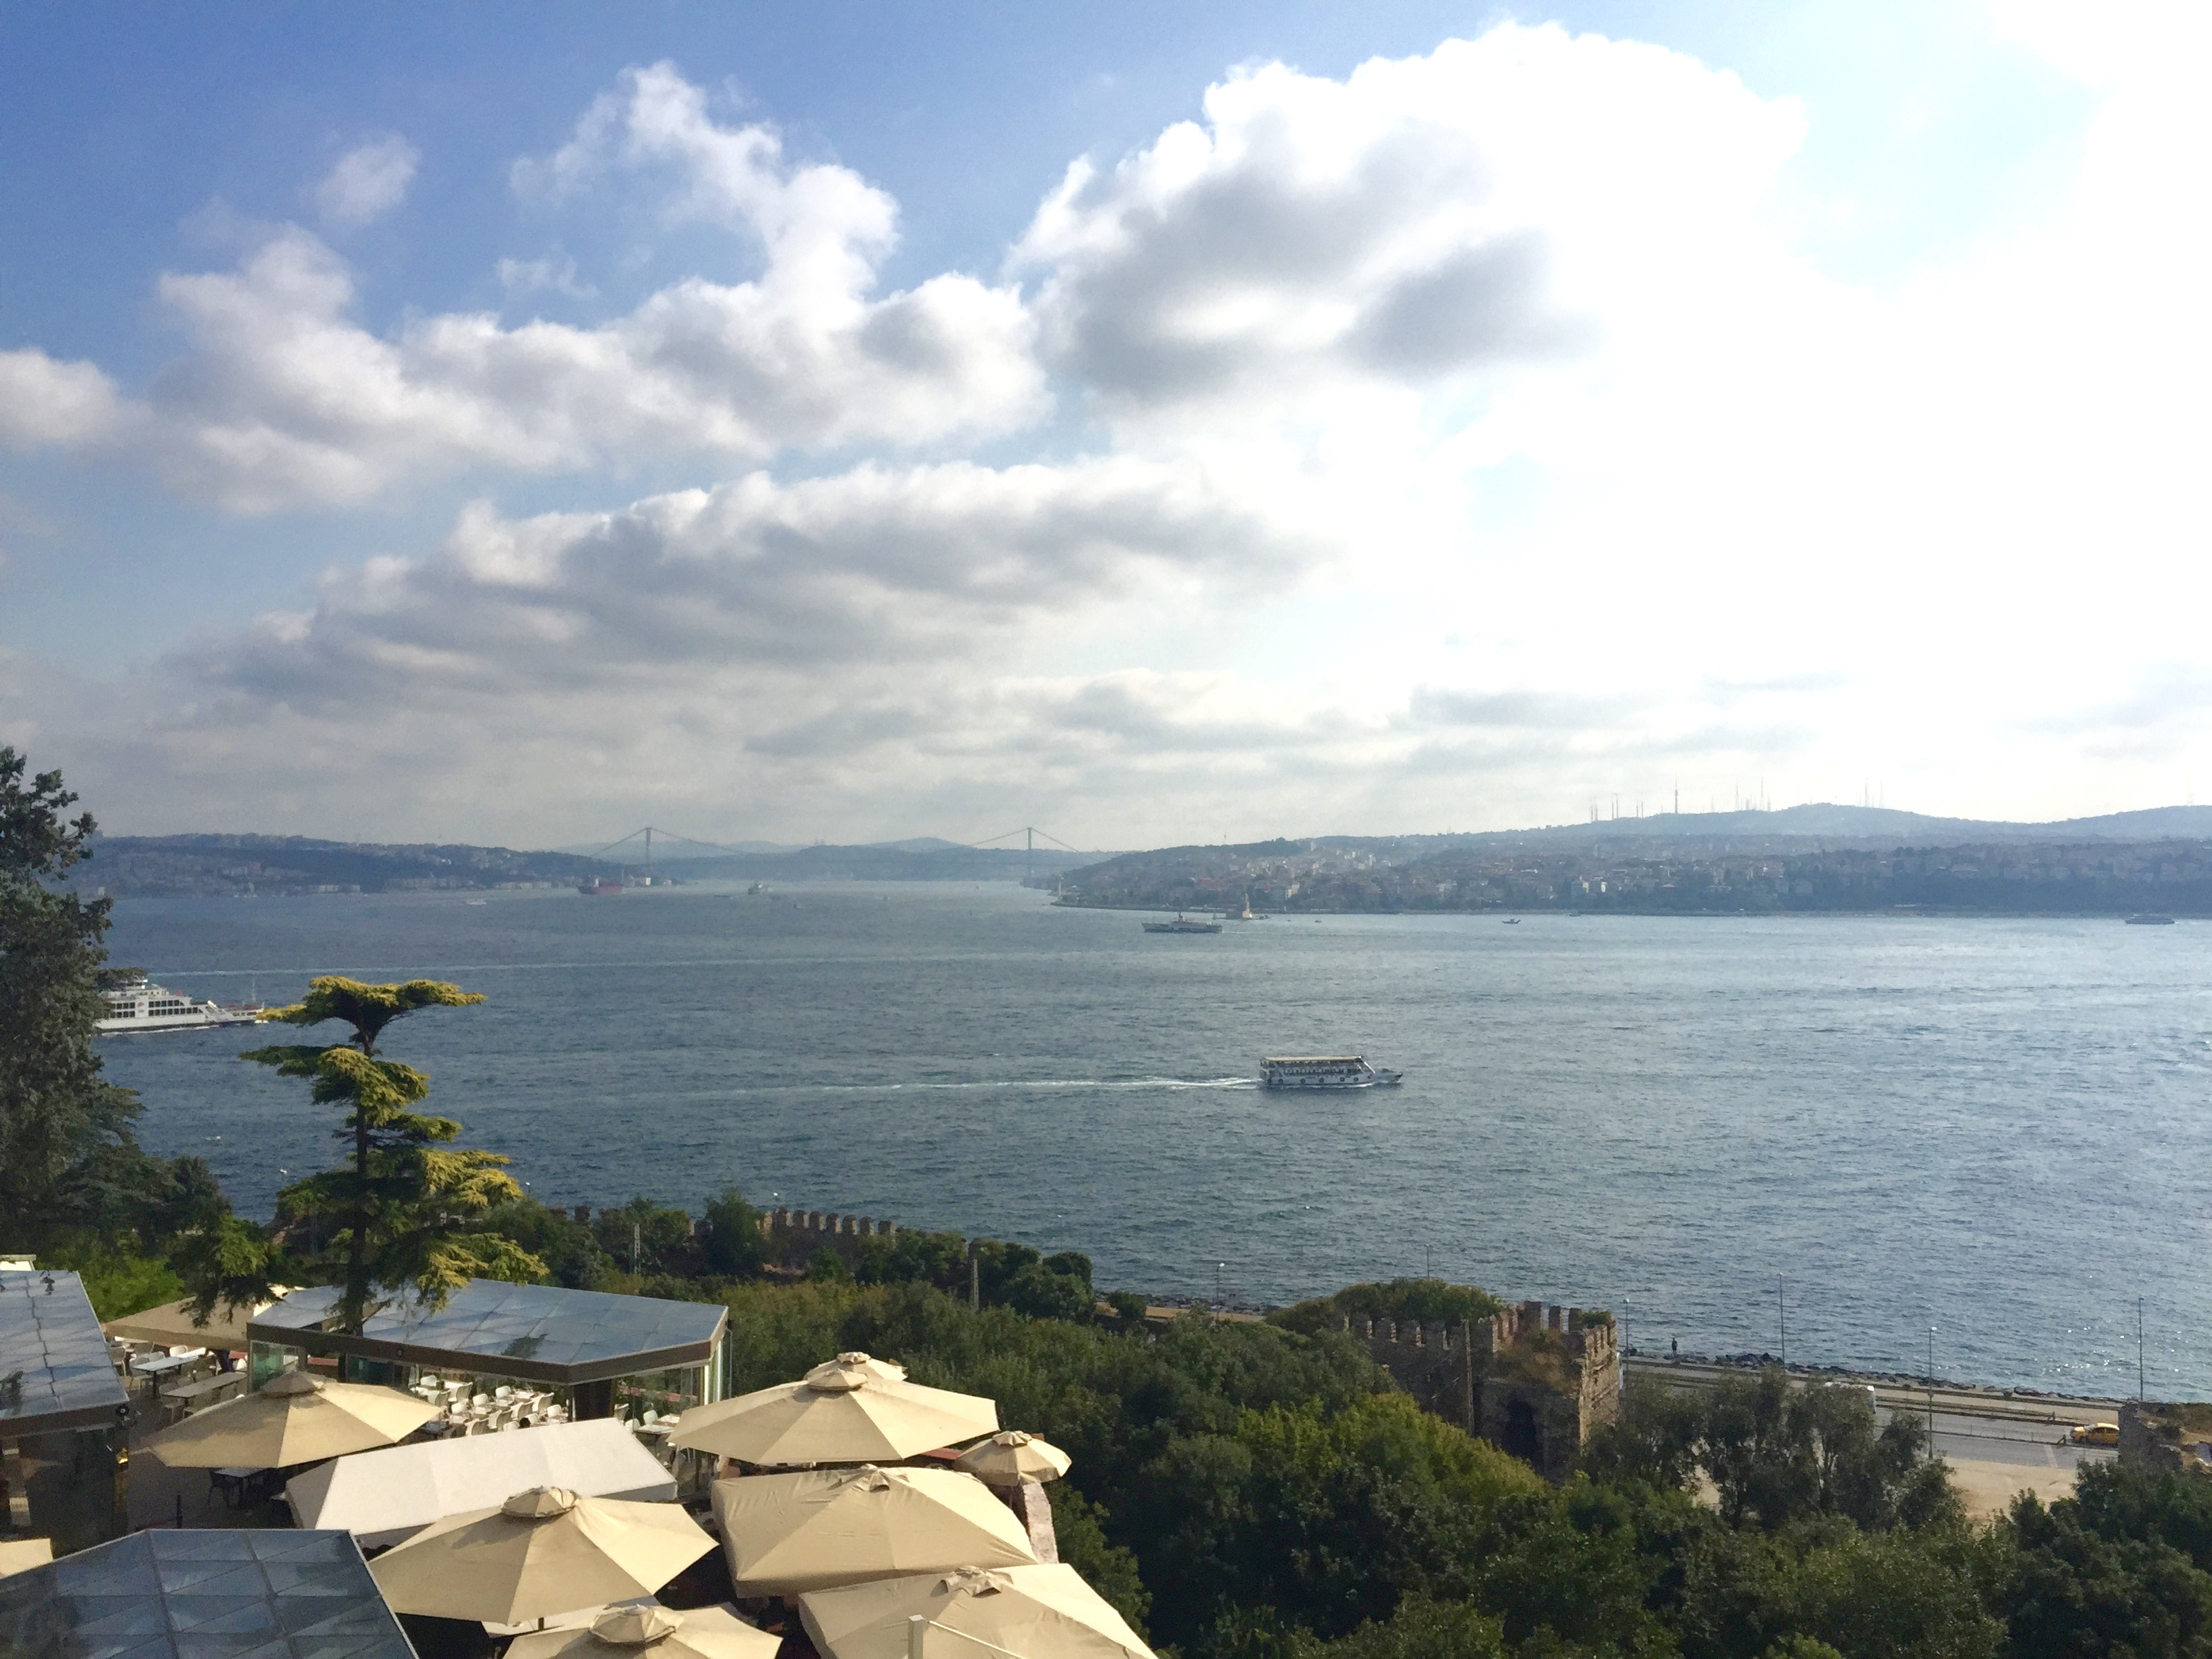 View from Topkapi Palace, Stop 1 on our Istanbul itinerary